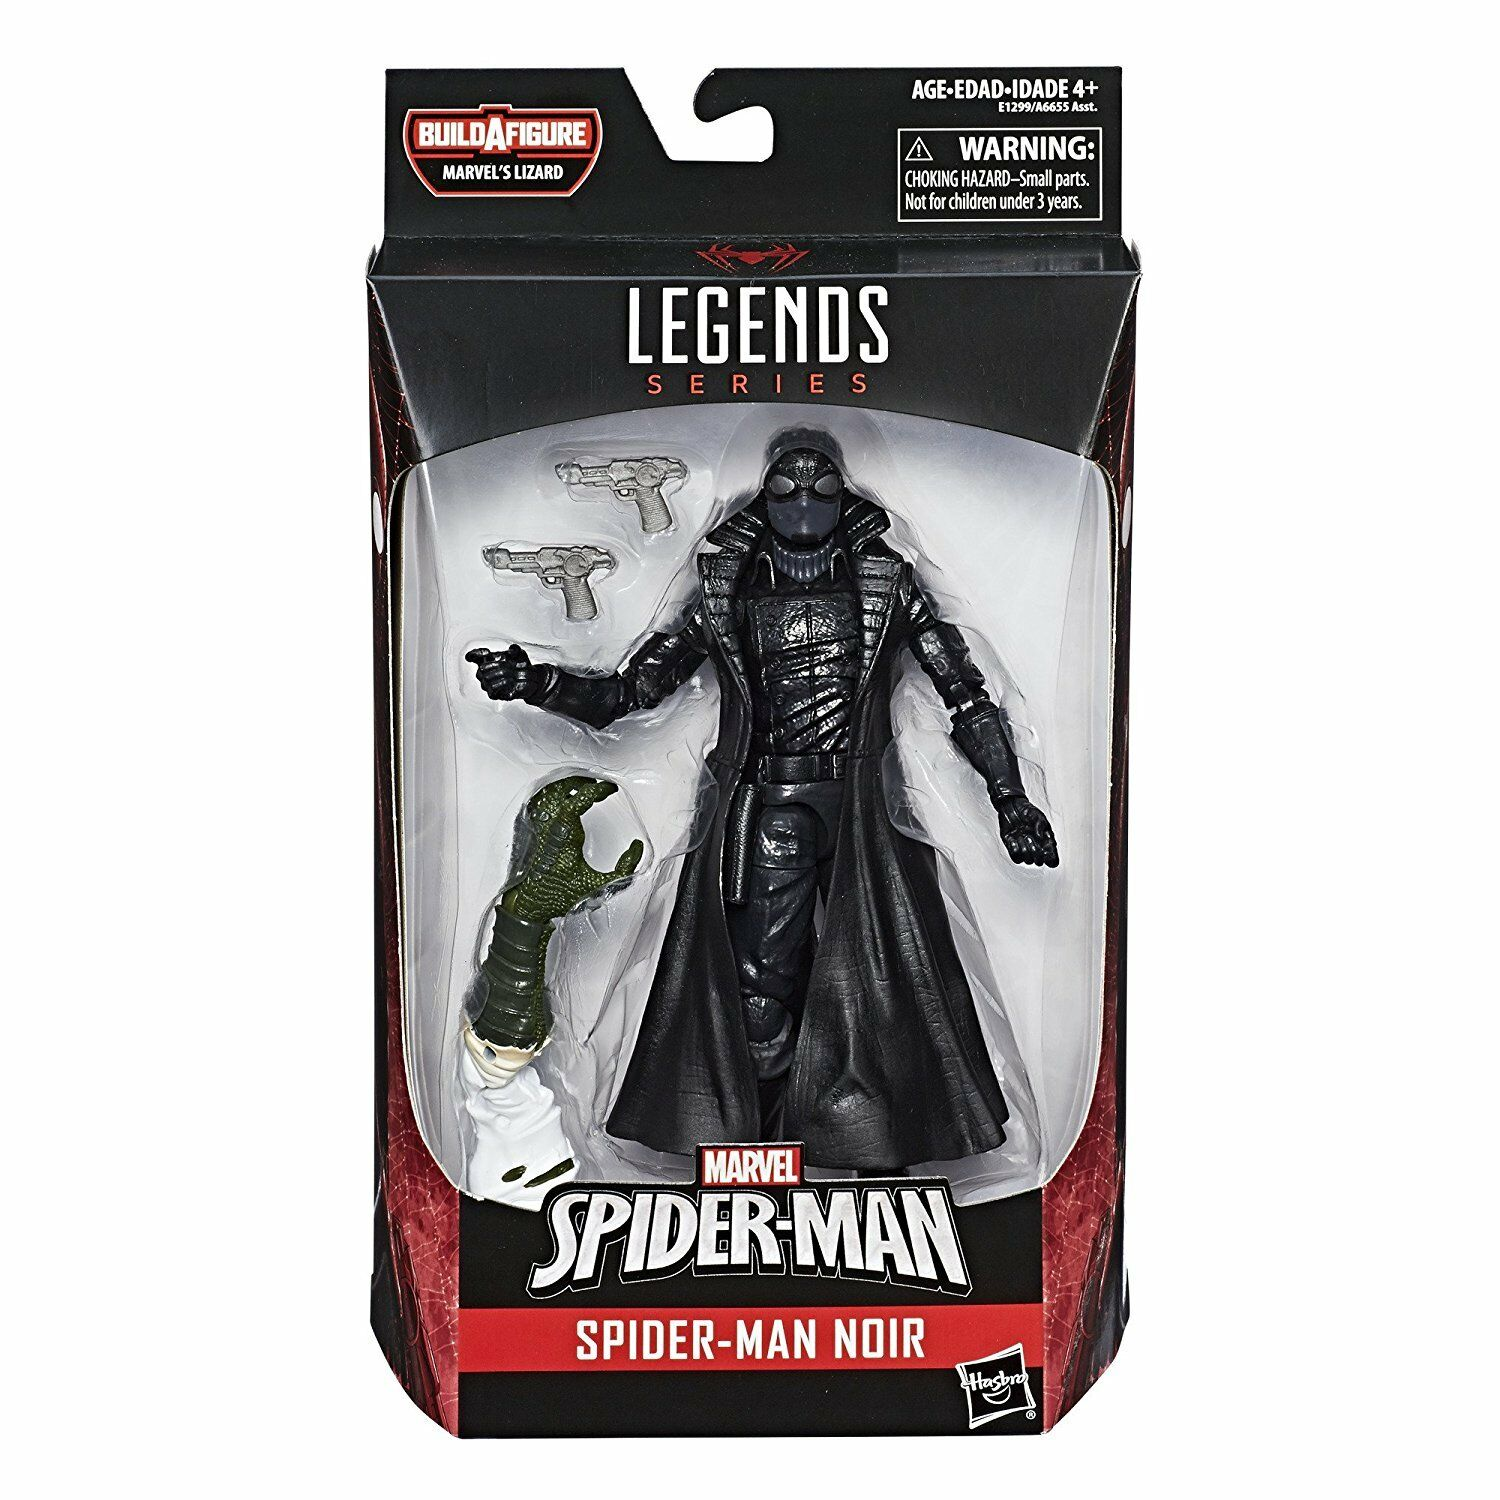 MARVEL LEGENDS LEGENDS LEGENDS SPIDER-uomo nero BUILD A cifra MARVEL'S LIZARD BAF UNOPENED da933d